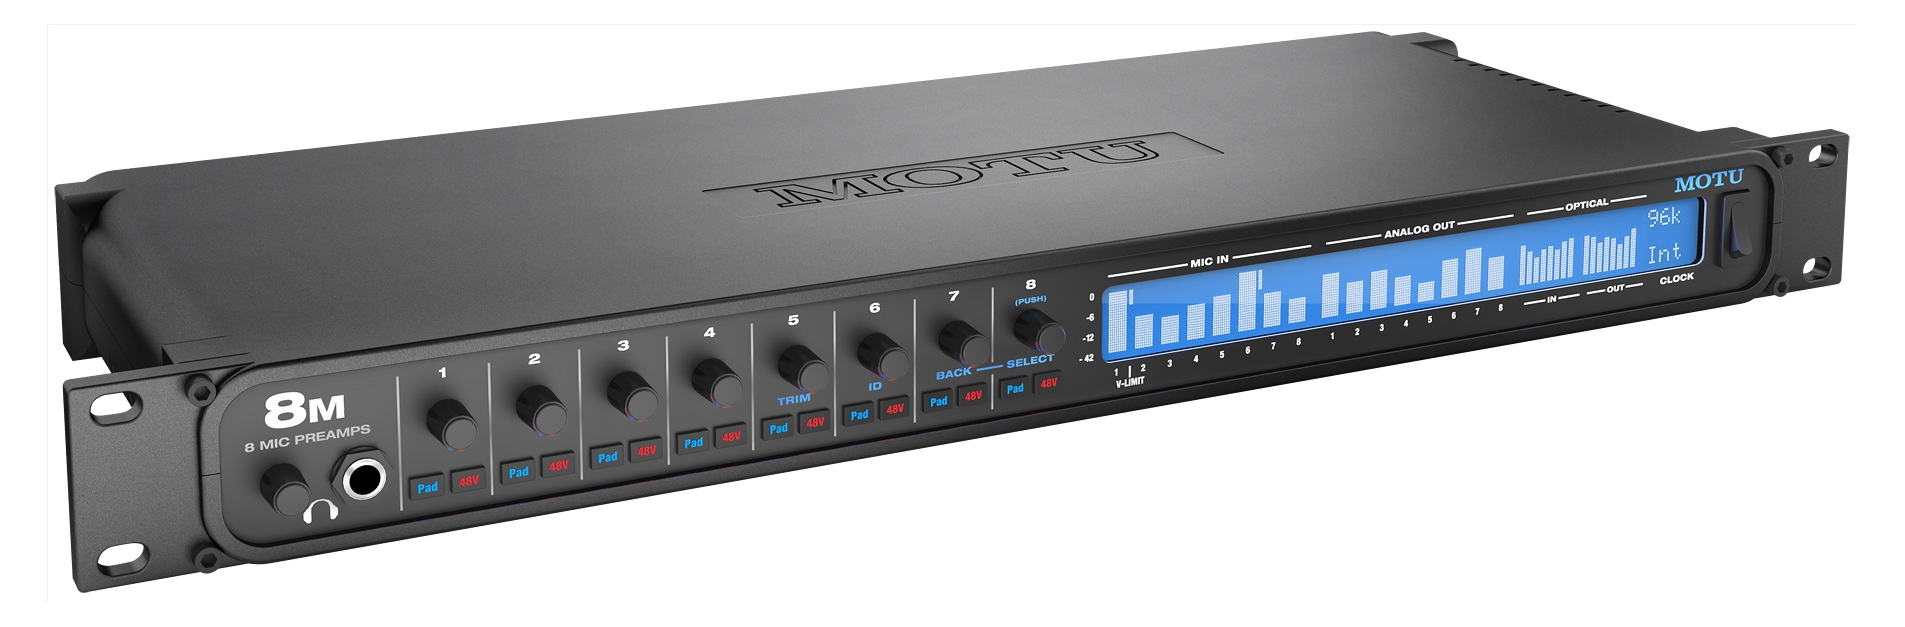 WEB Image MOTU 8M TB   USB2 Audio interface  8 Pre-2037462615